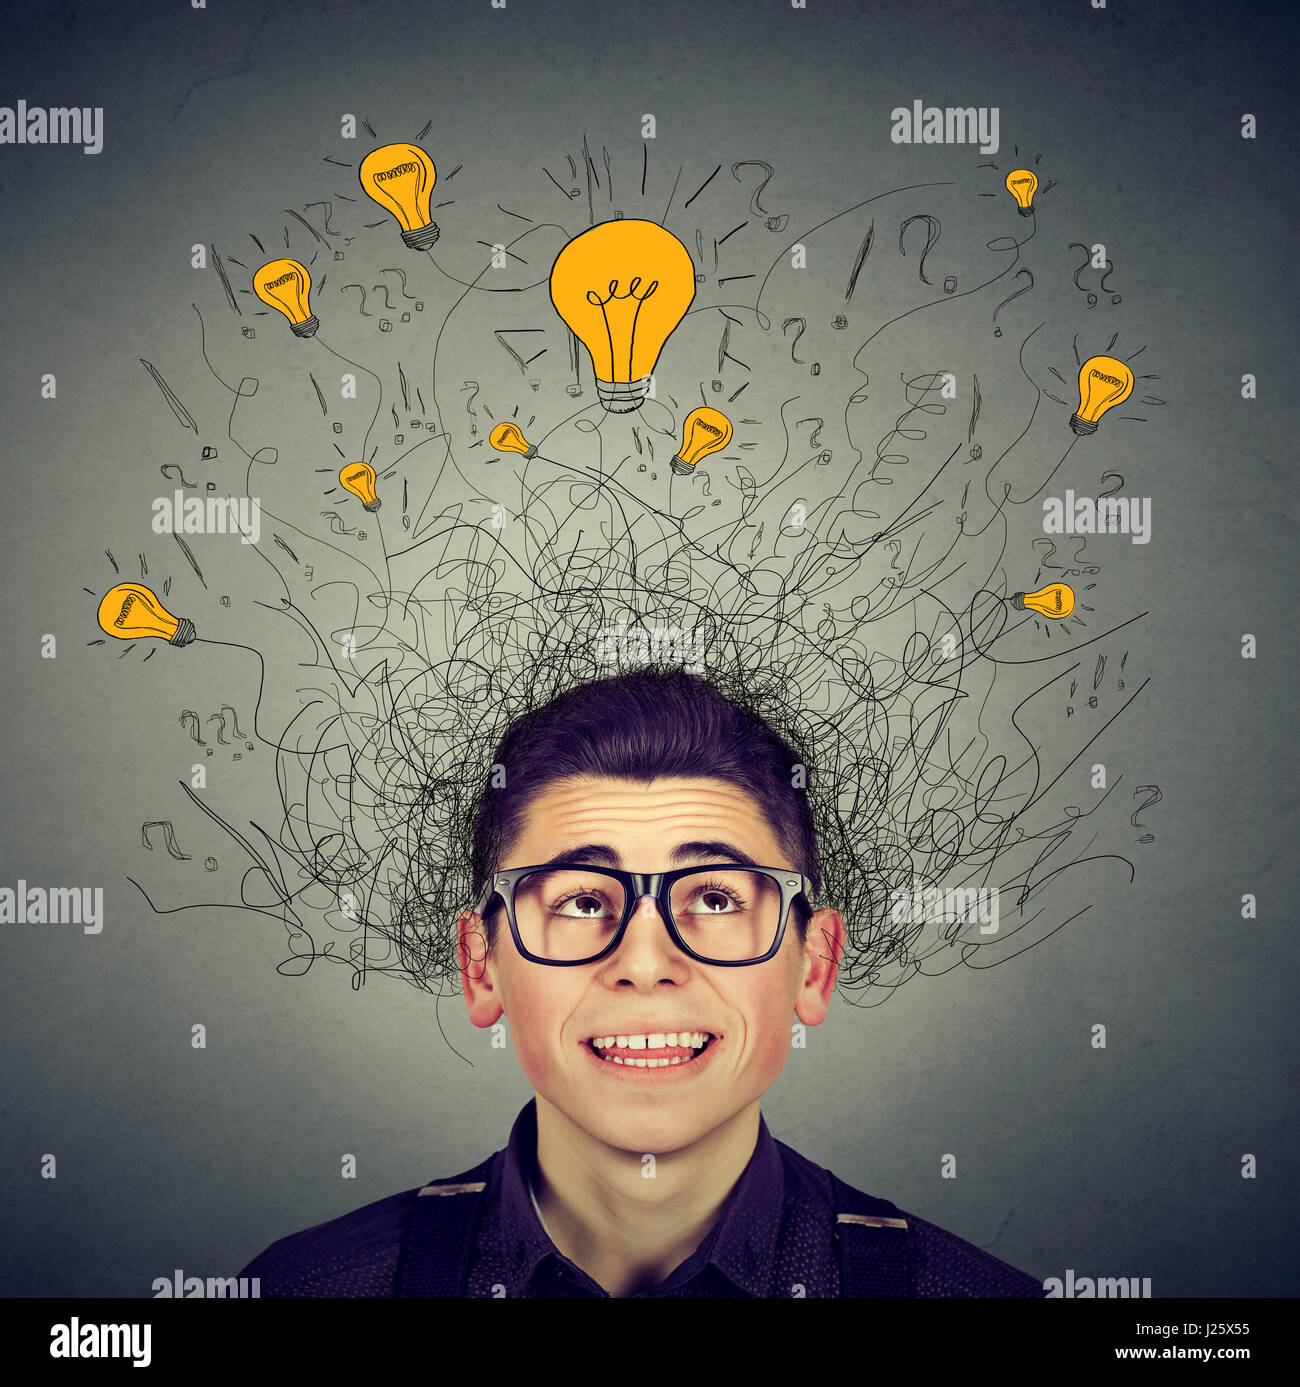 Brain connections. Excited man with many ideas light bulbs above head looking up isolated on gray wall background. - Stock Image